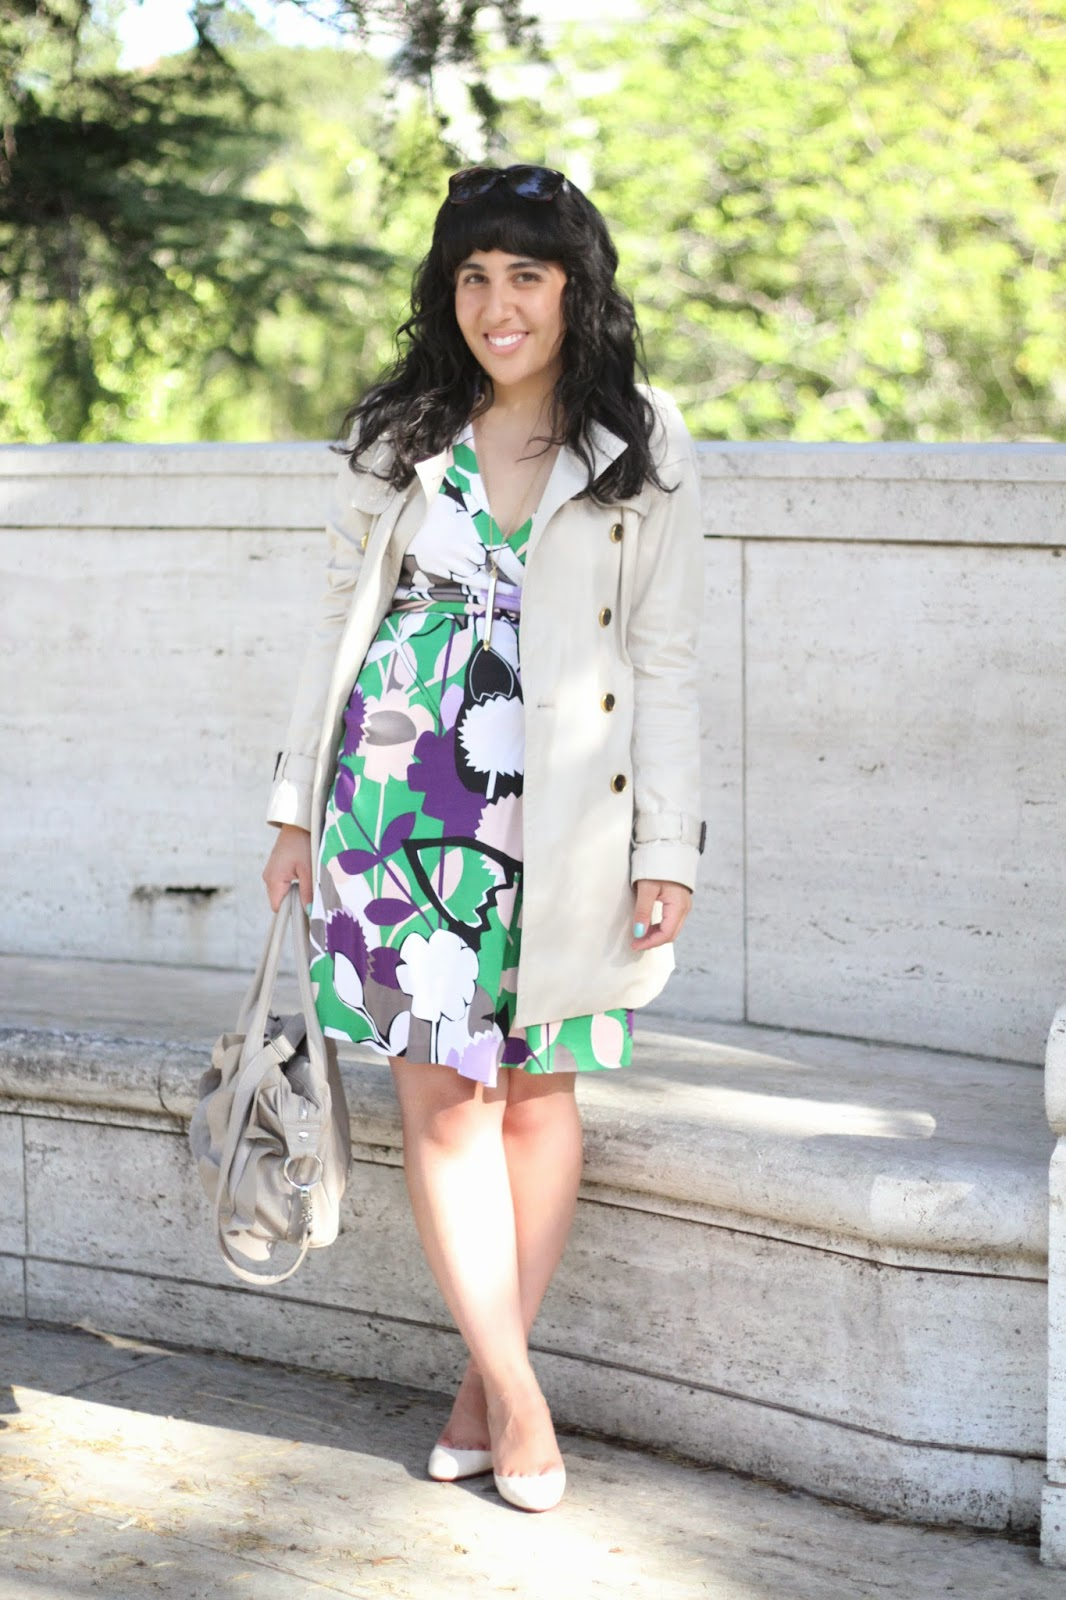 DVF Wrap Dress and Trench Coat